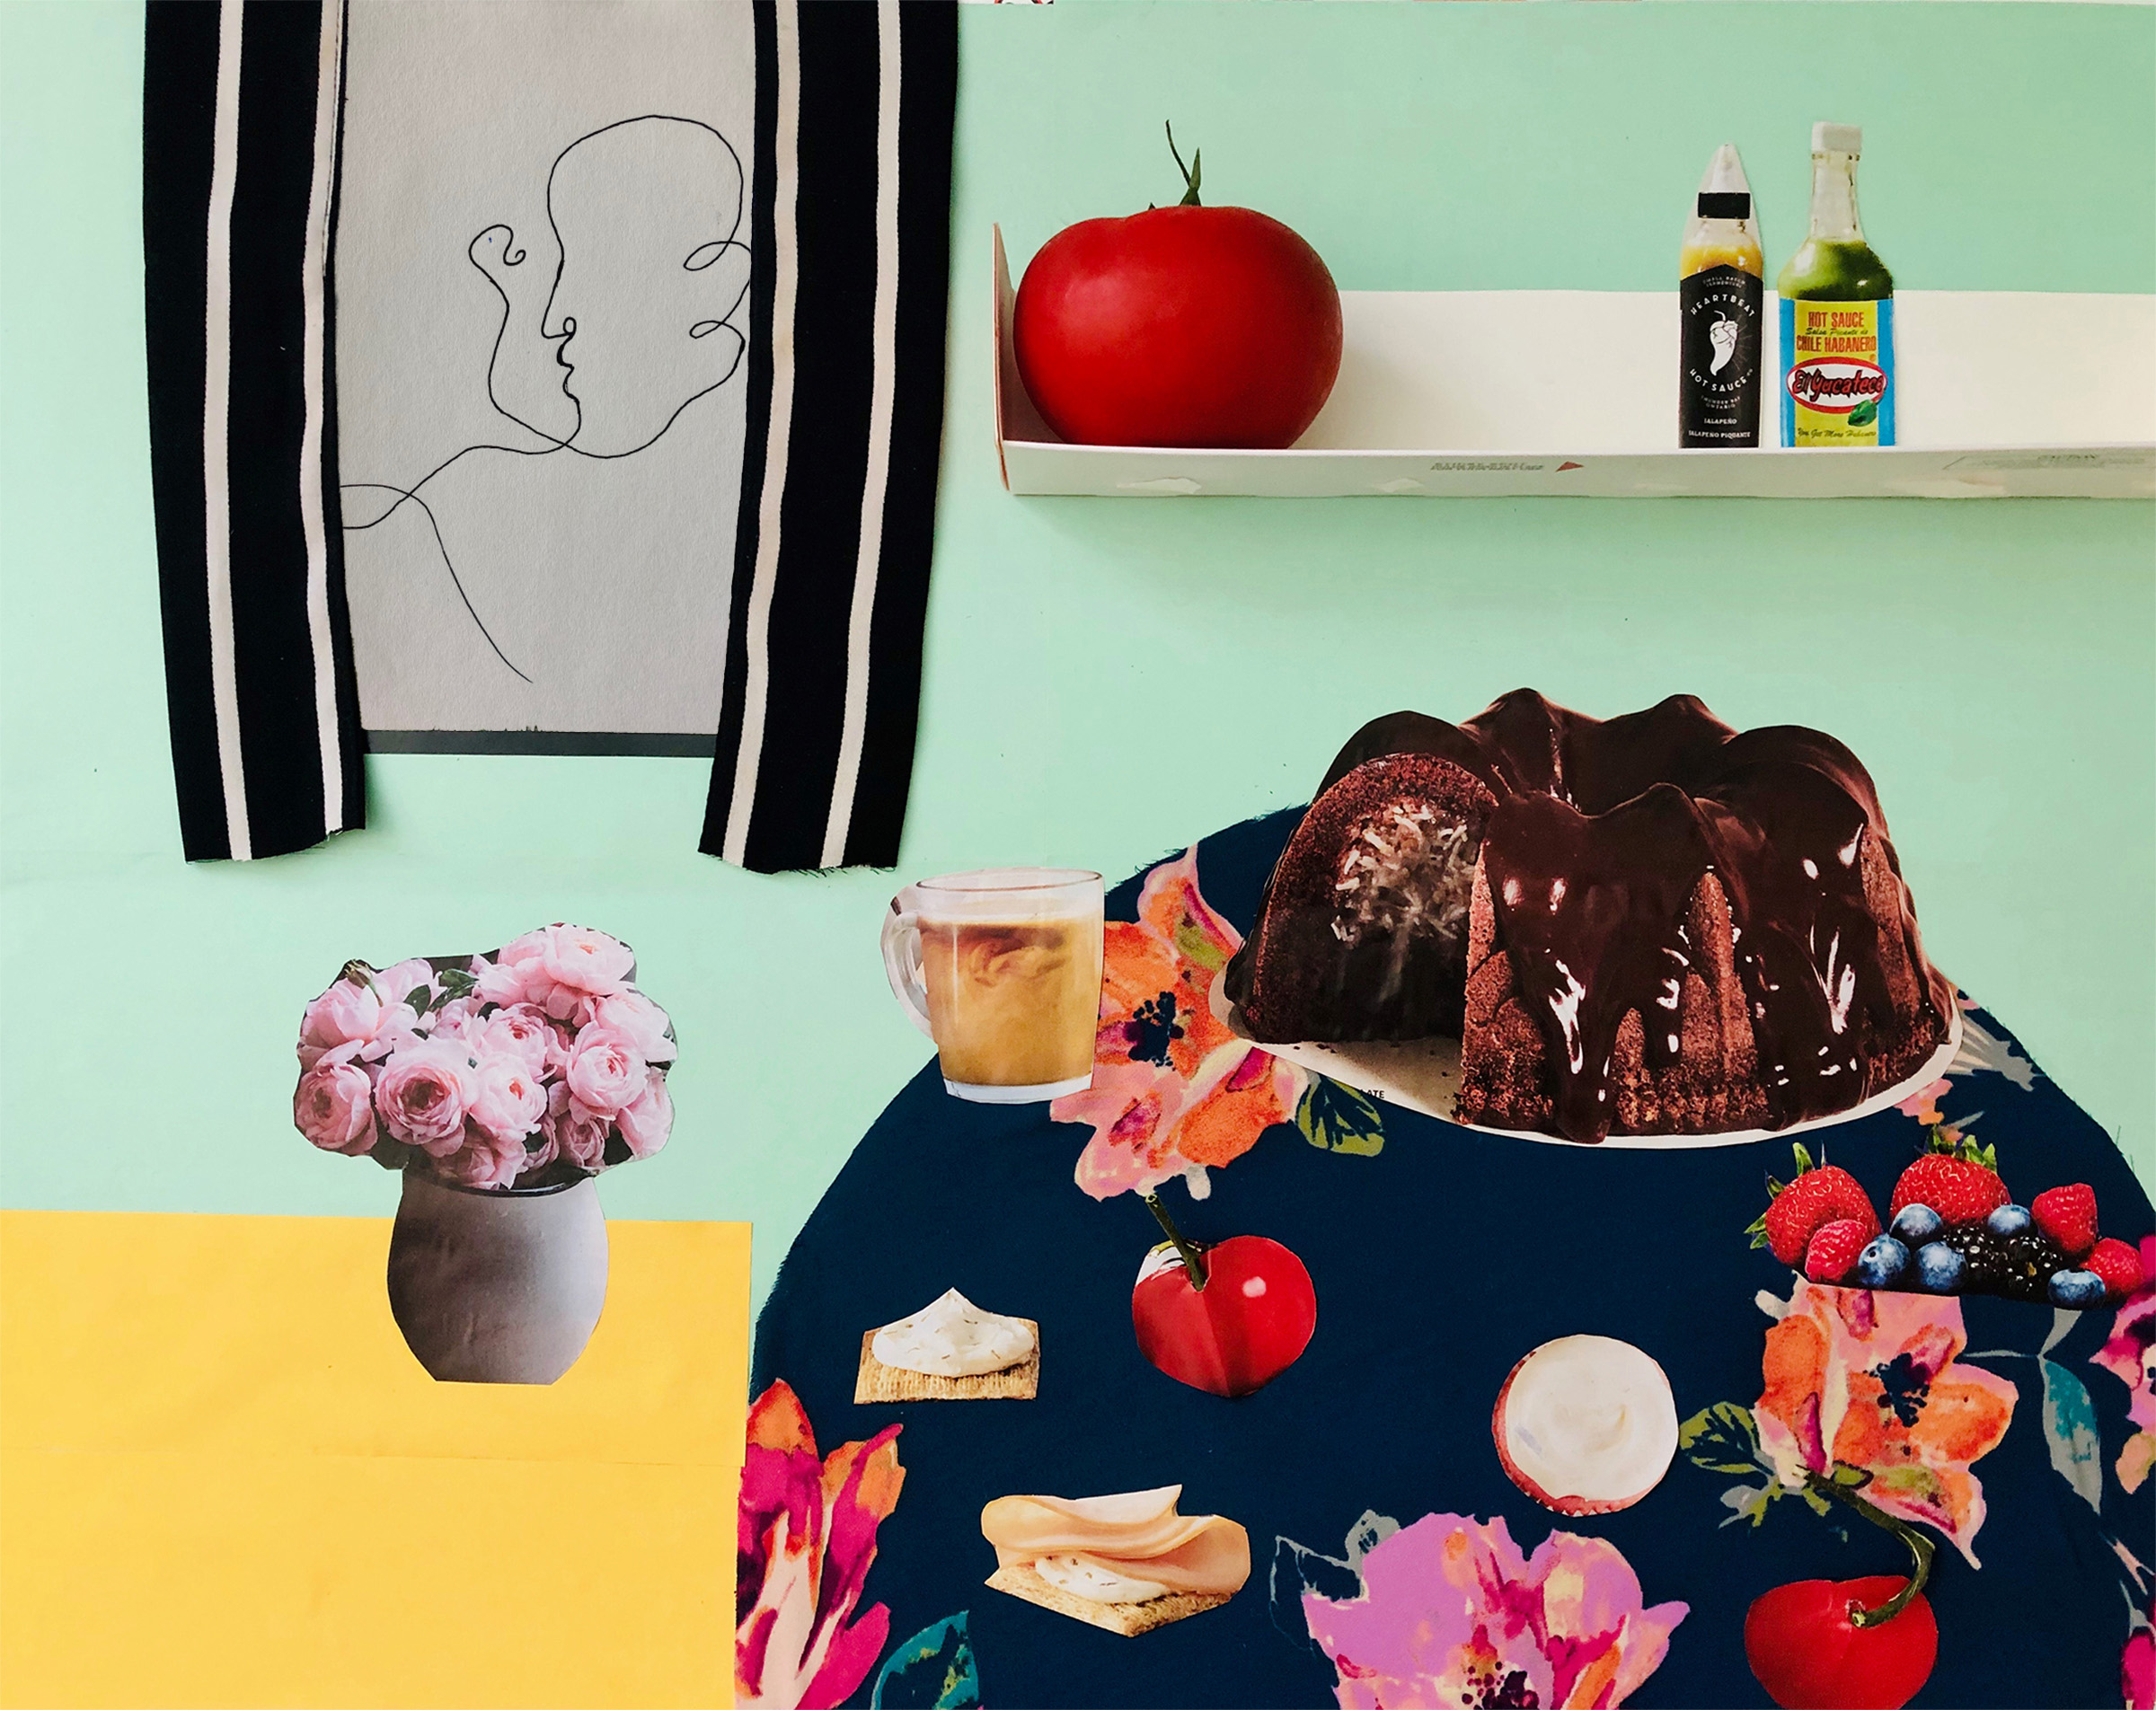 Collage of a kitchen scene including a table with a cake, tomatoes, and fruit, shelf with a tomato on it, window, and vase with pink flowers.